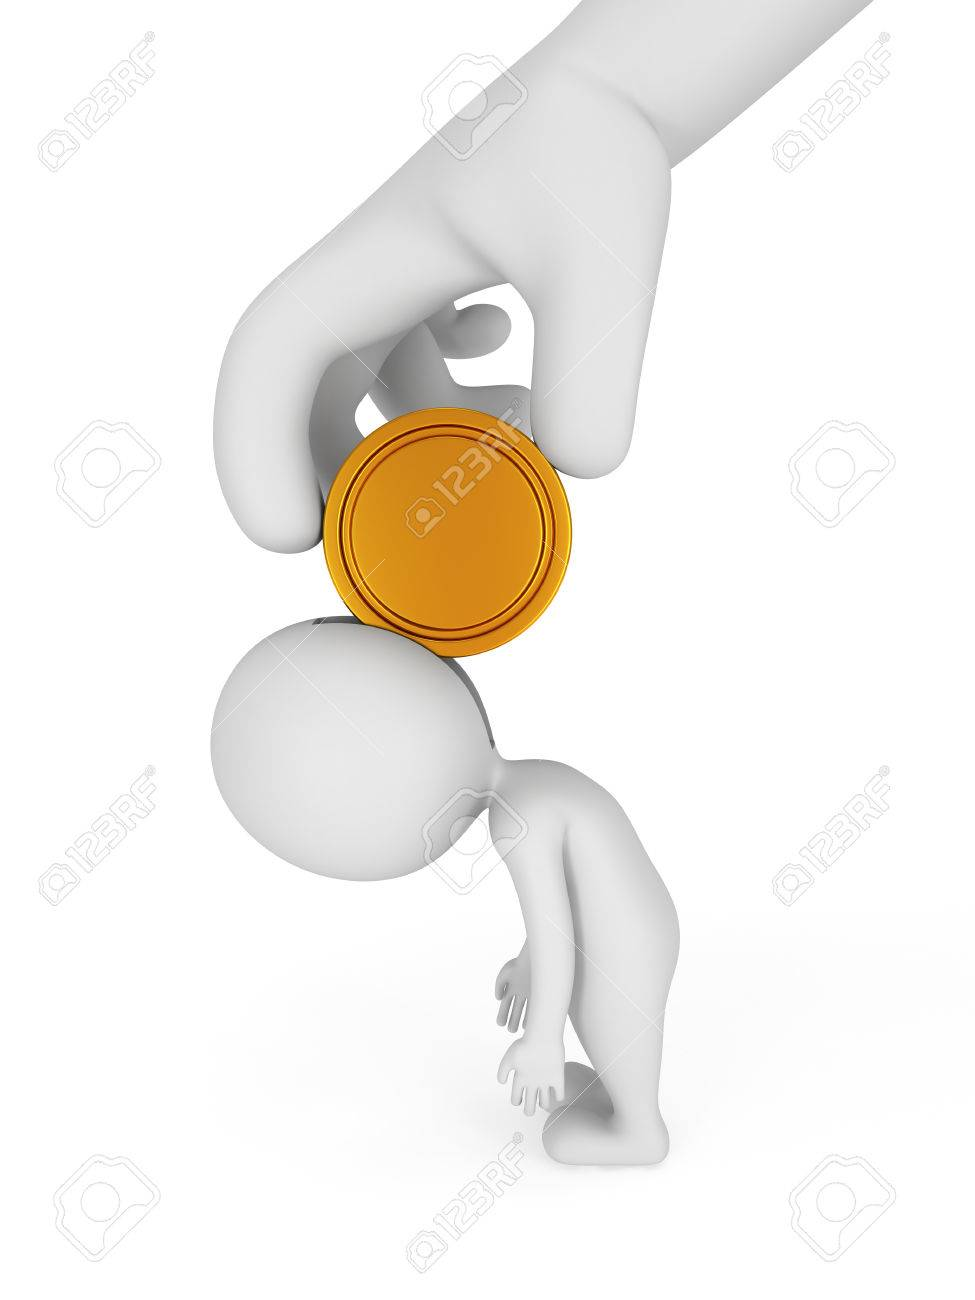 tired d man and boss hand coin employee and employer stock photo tired 3d man and boss hand coin employee and employer relations business job salary concept